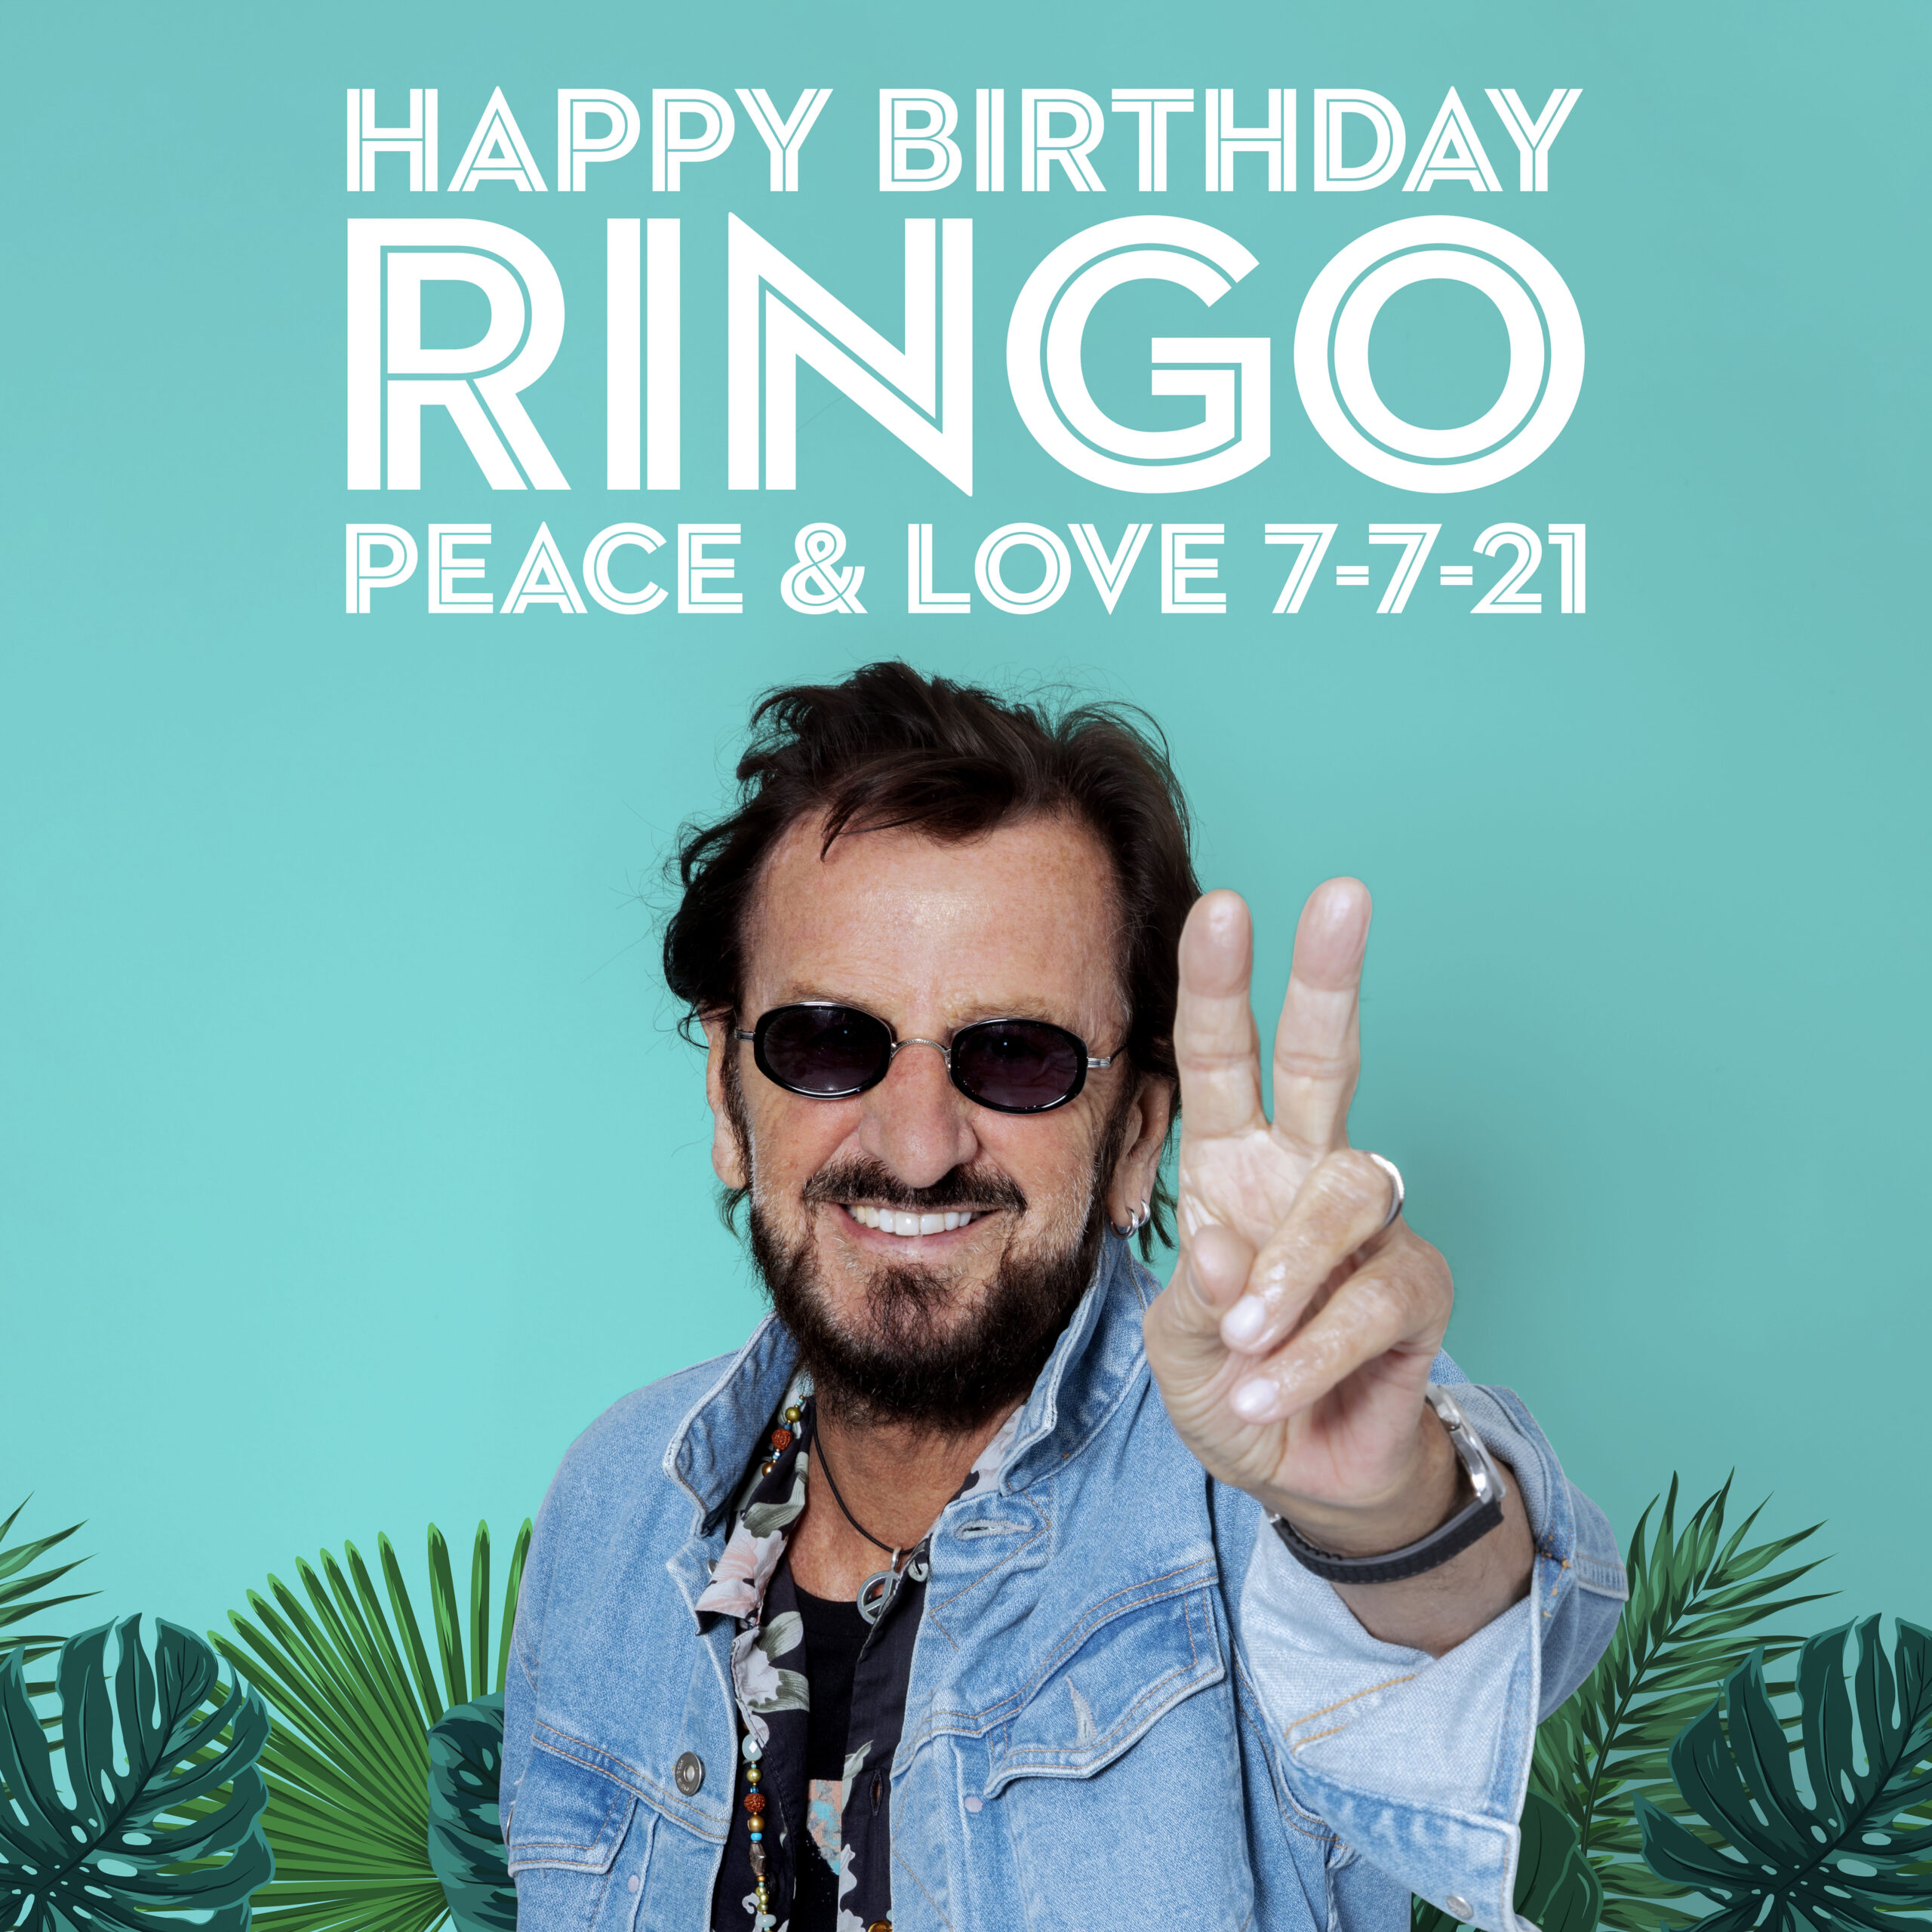 Peace and Love for Ringo Starr on his birthday in London